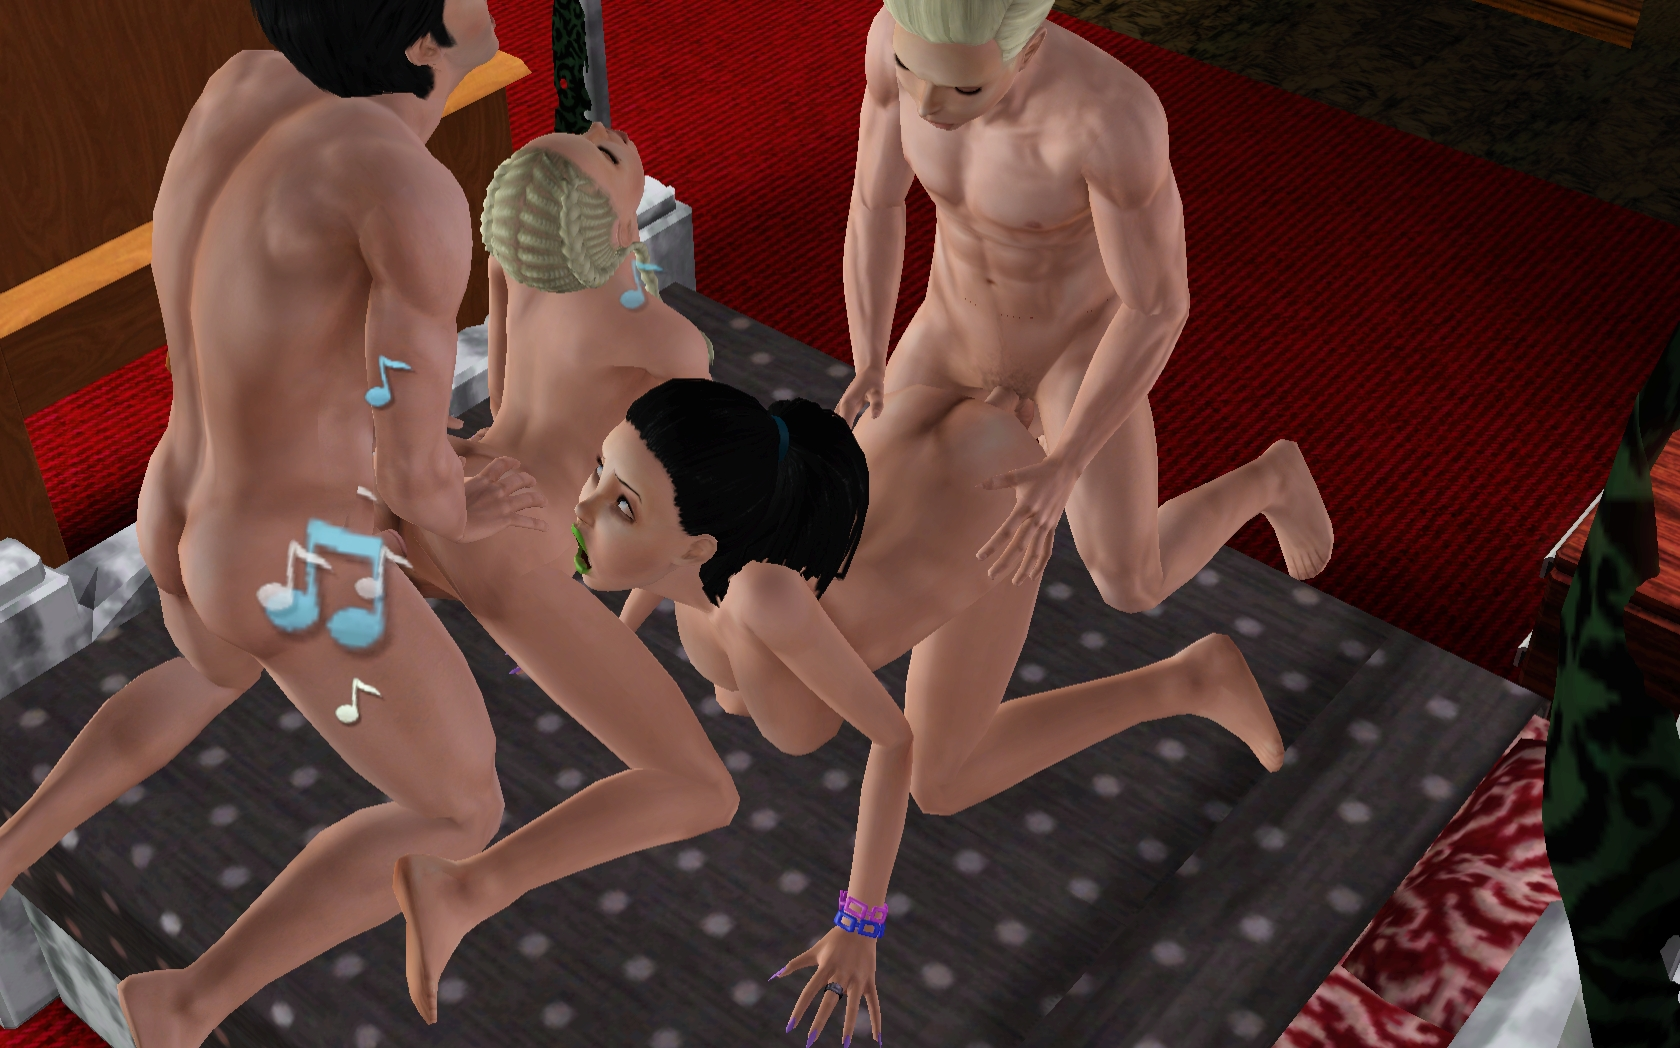 Sex sim girls #9